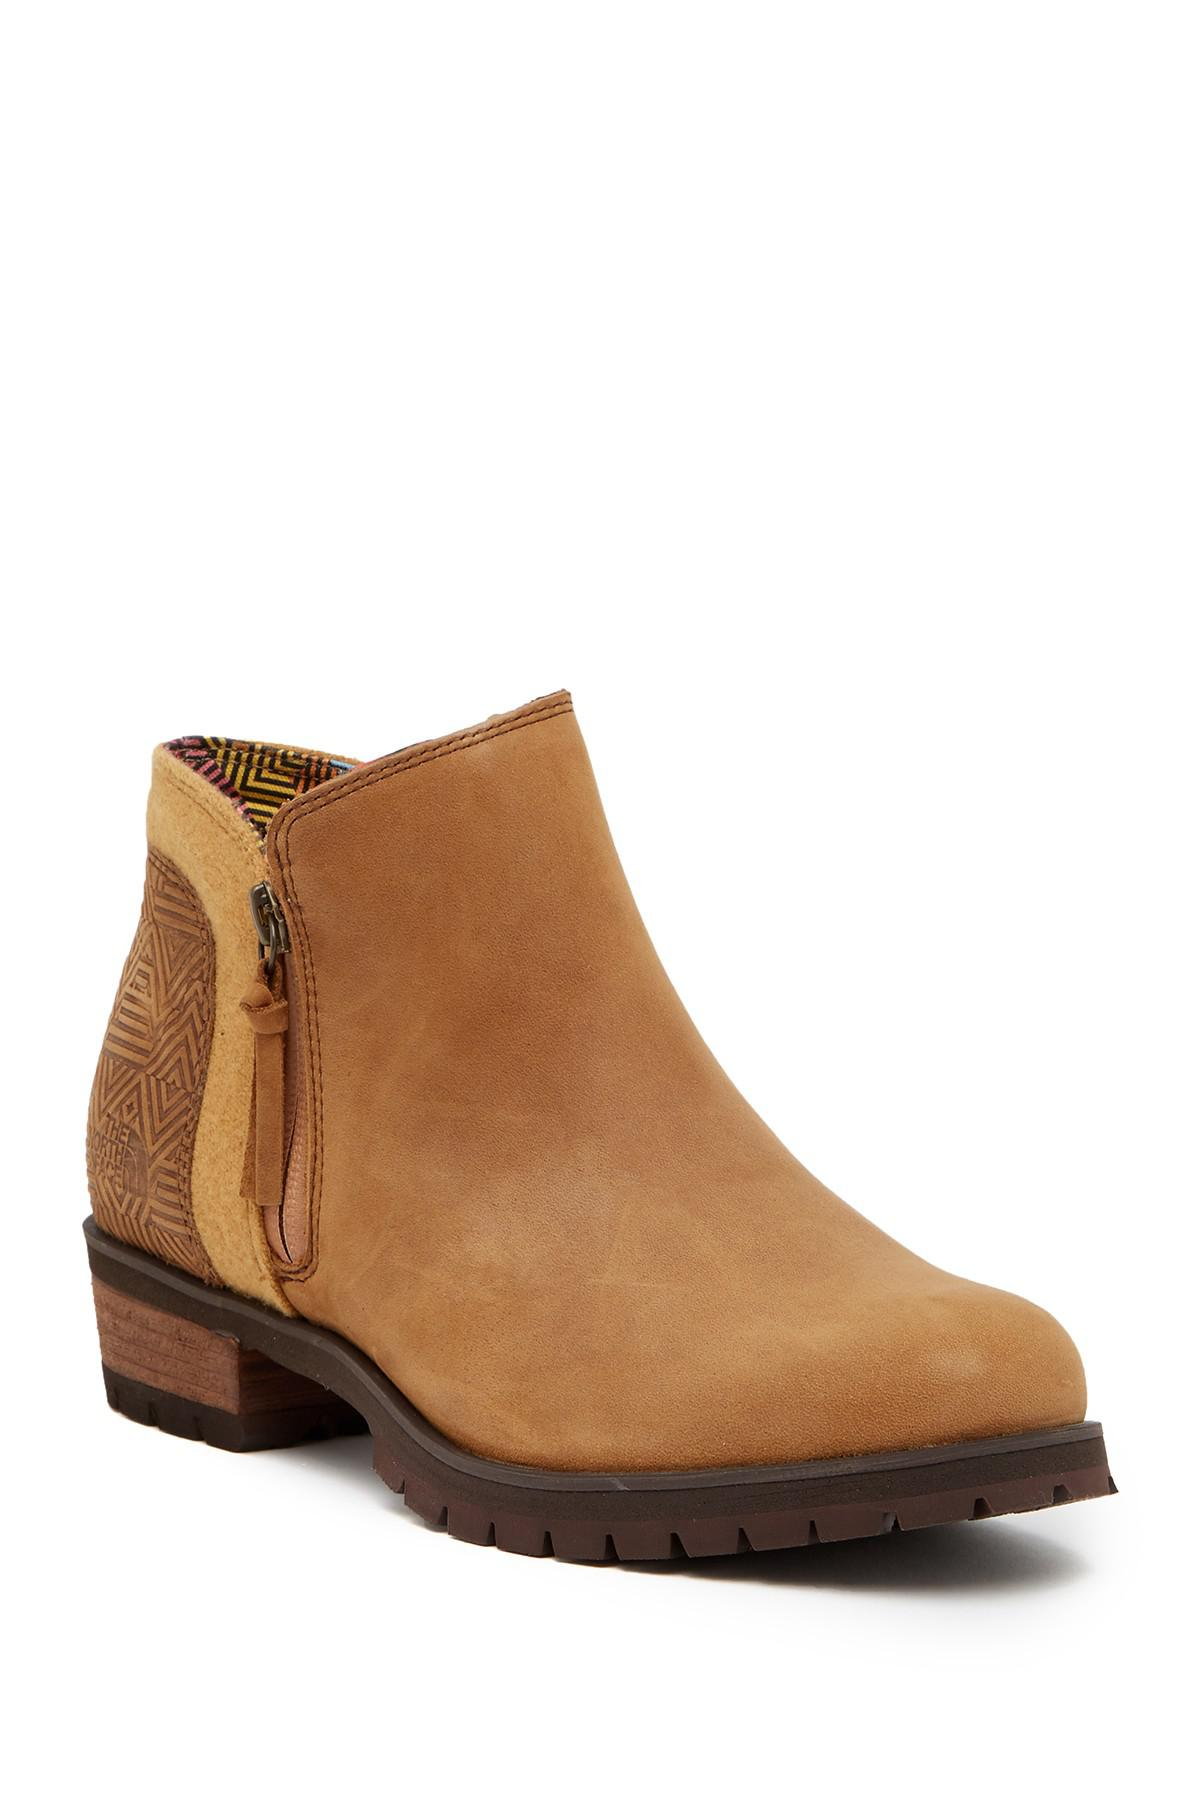 The North Face Bridget Waterproof Leather Ankle Boot 3UFfSGDyC